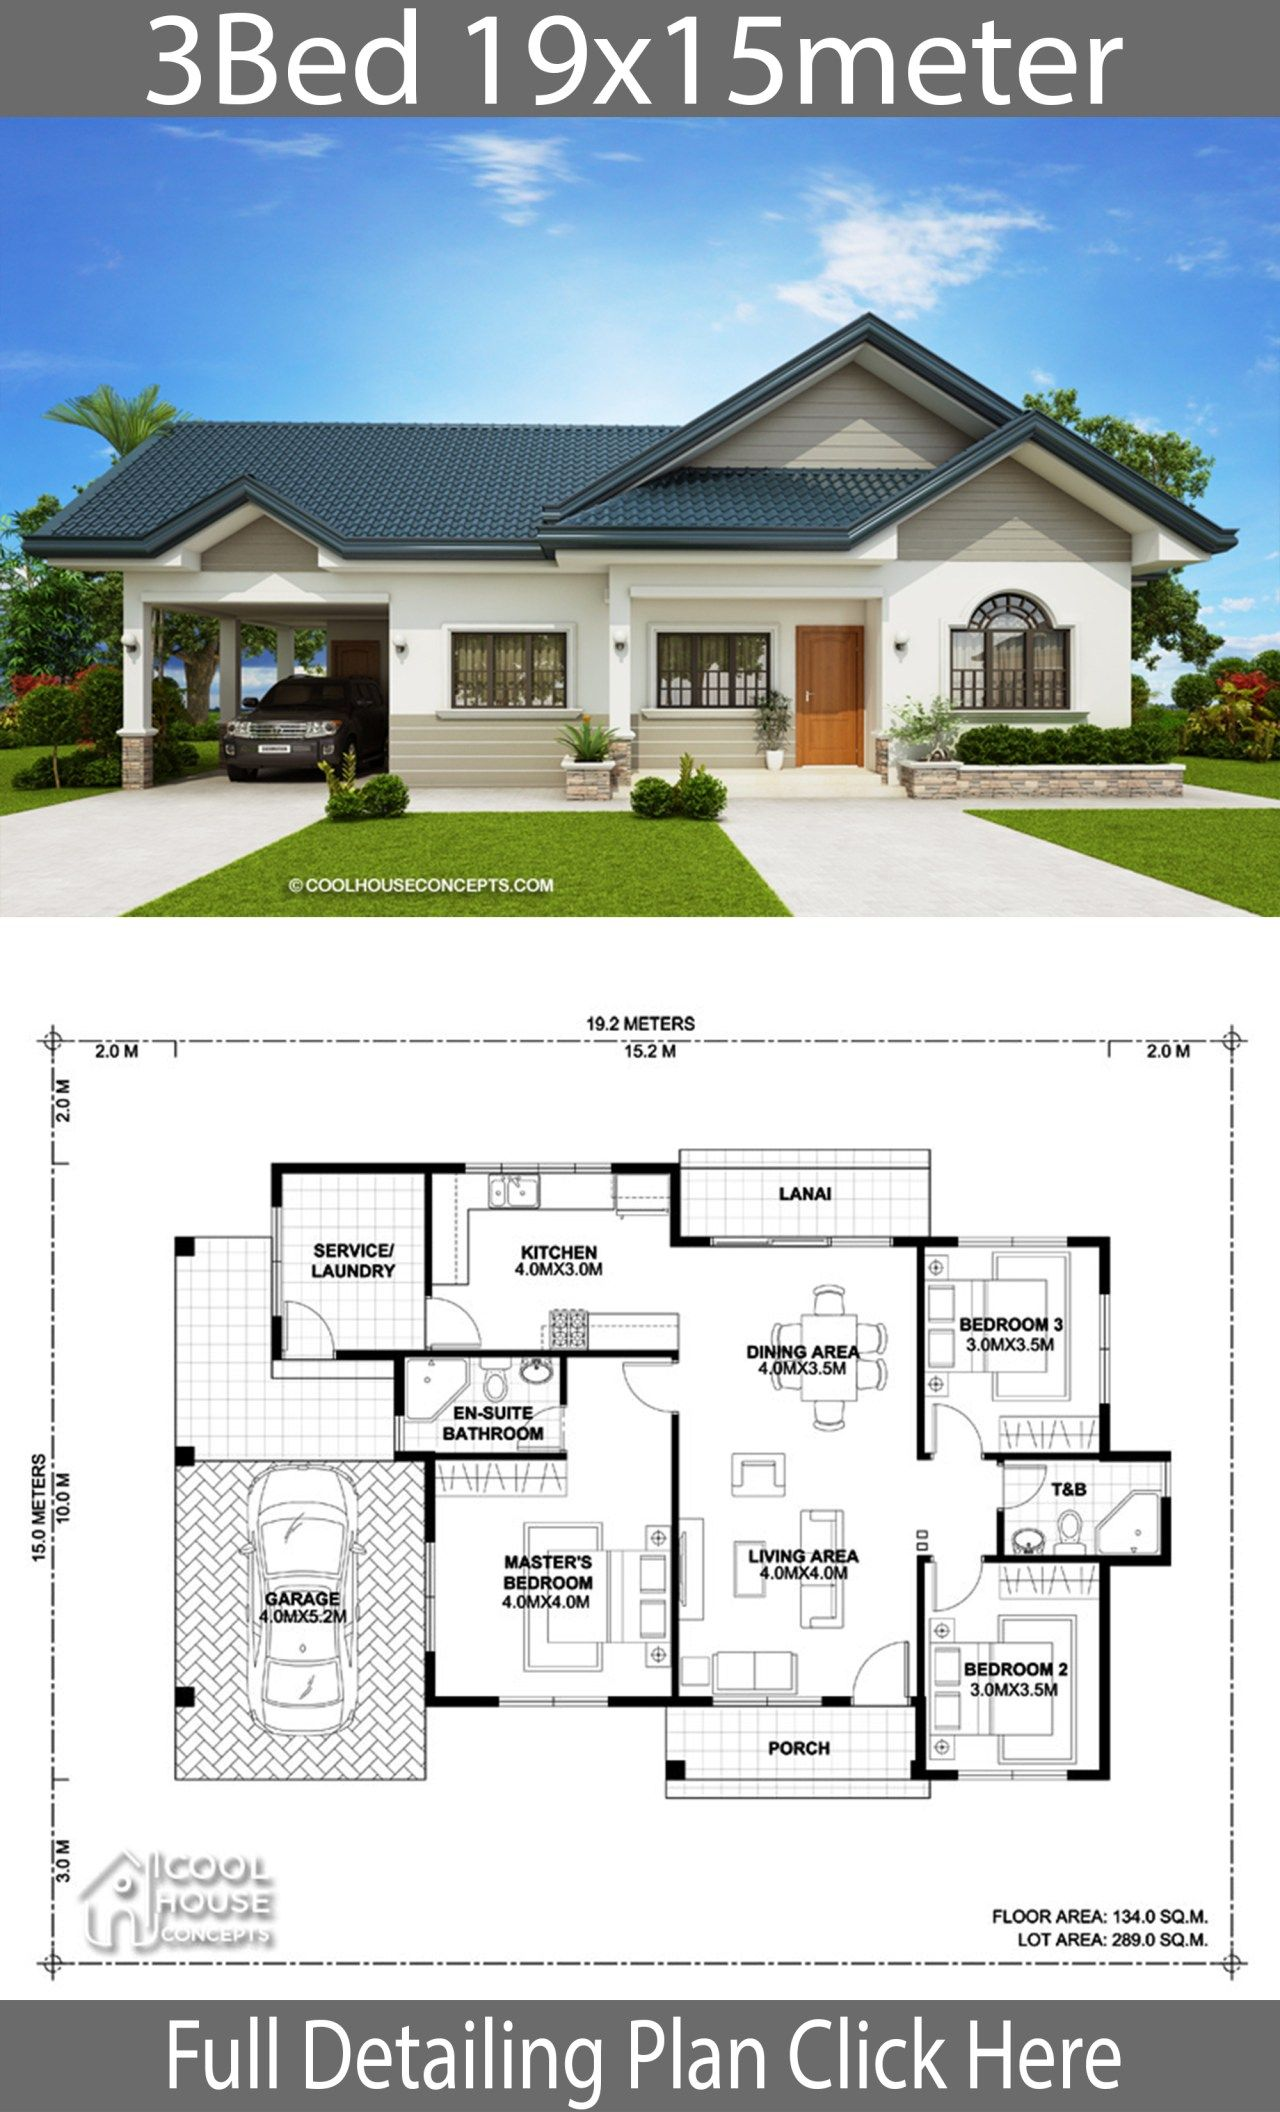 Home Design Plan 19x15m With 3 Bedrooms Architectural House Plans Model House Plan Bungalow House Design